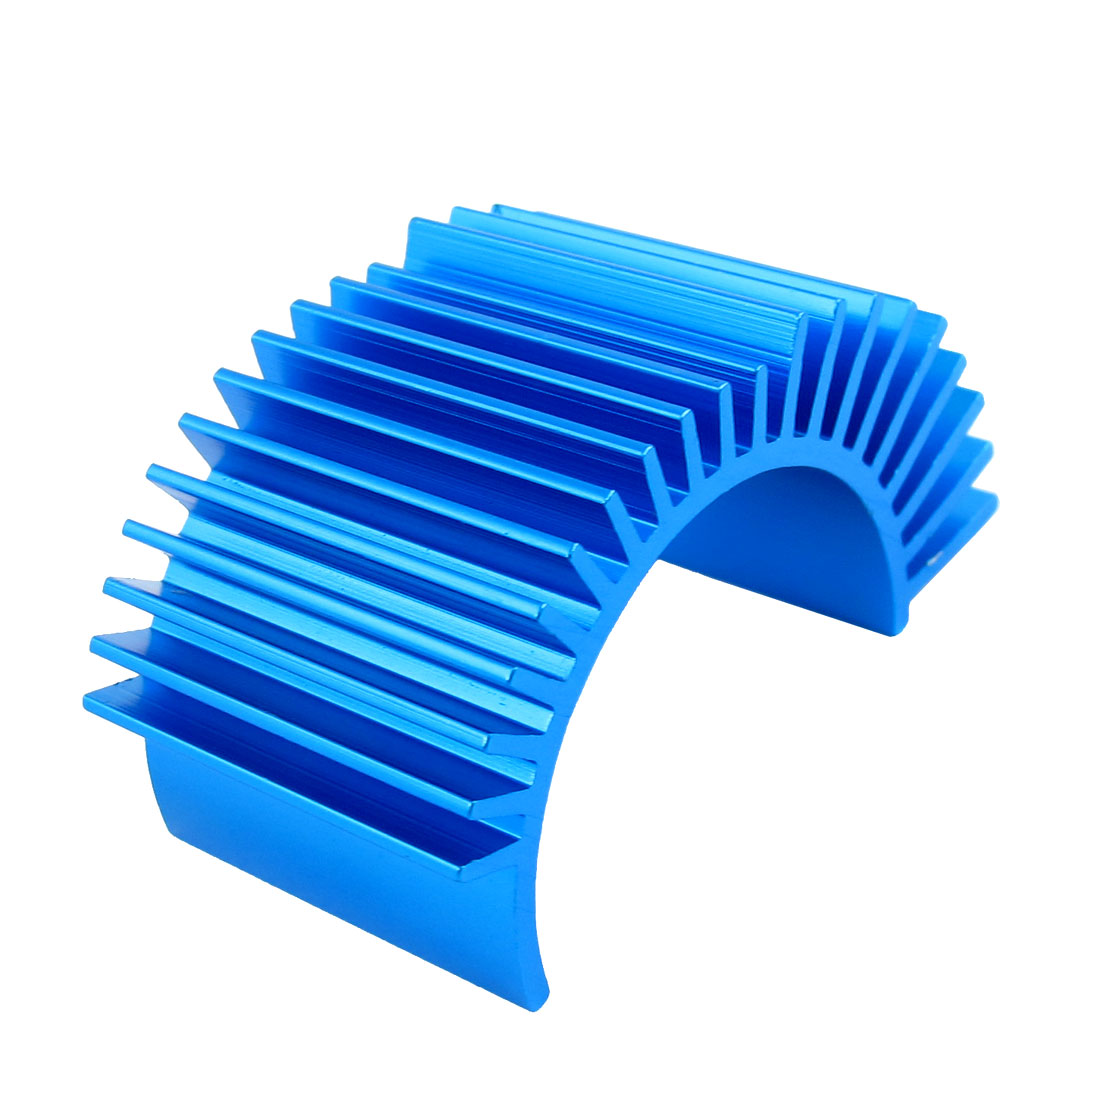 Blue Aluminum Heatsink Heat Dissipation Diffuse Cooling Fin Replacement for 540 550 3650 RC Motor